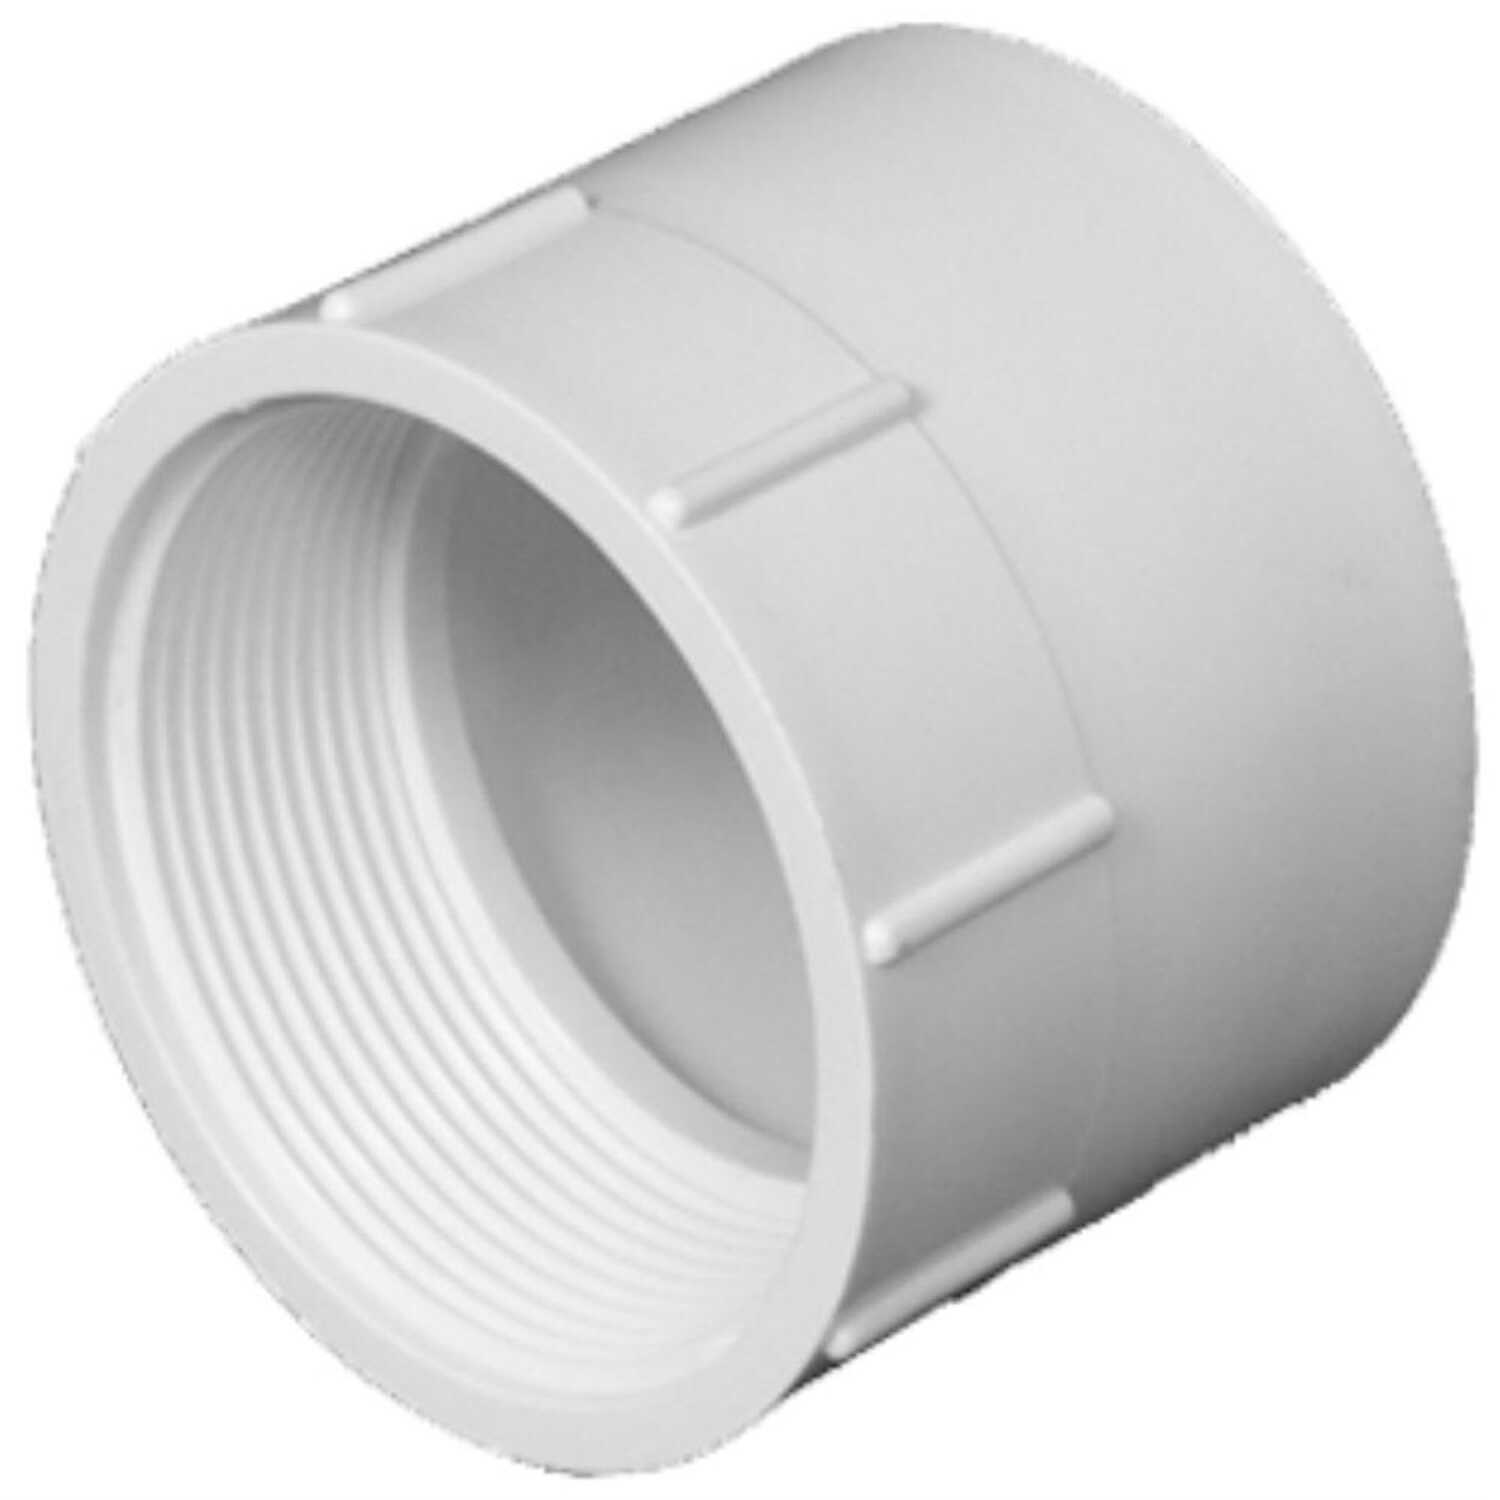 Charlotte Pipe  Schedule 40  4 in. Hub   x 4 in. Dia. x FPT   PVC  Adapter